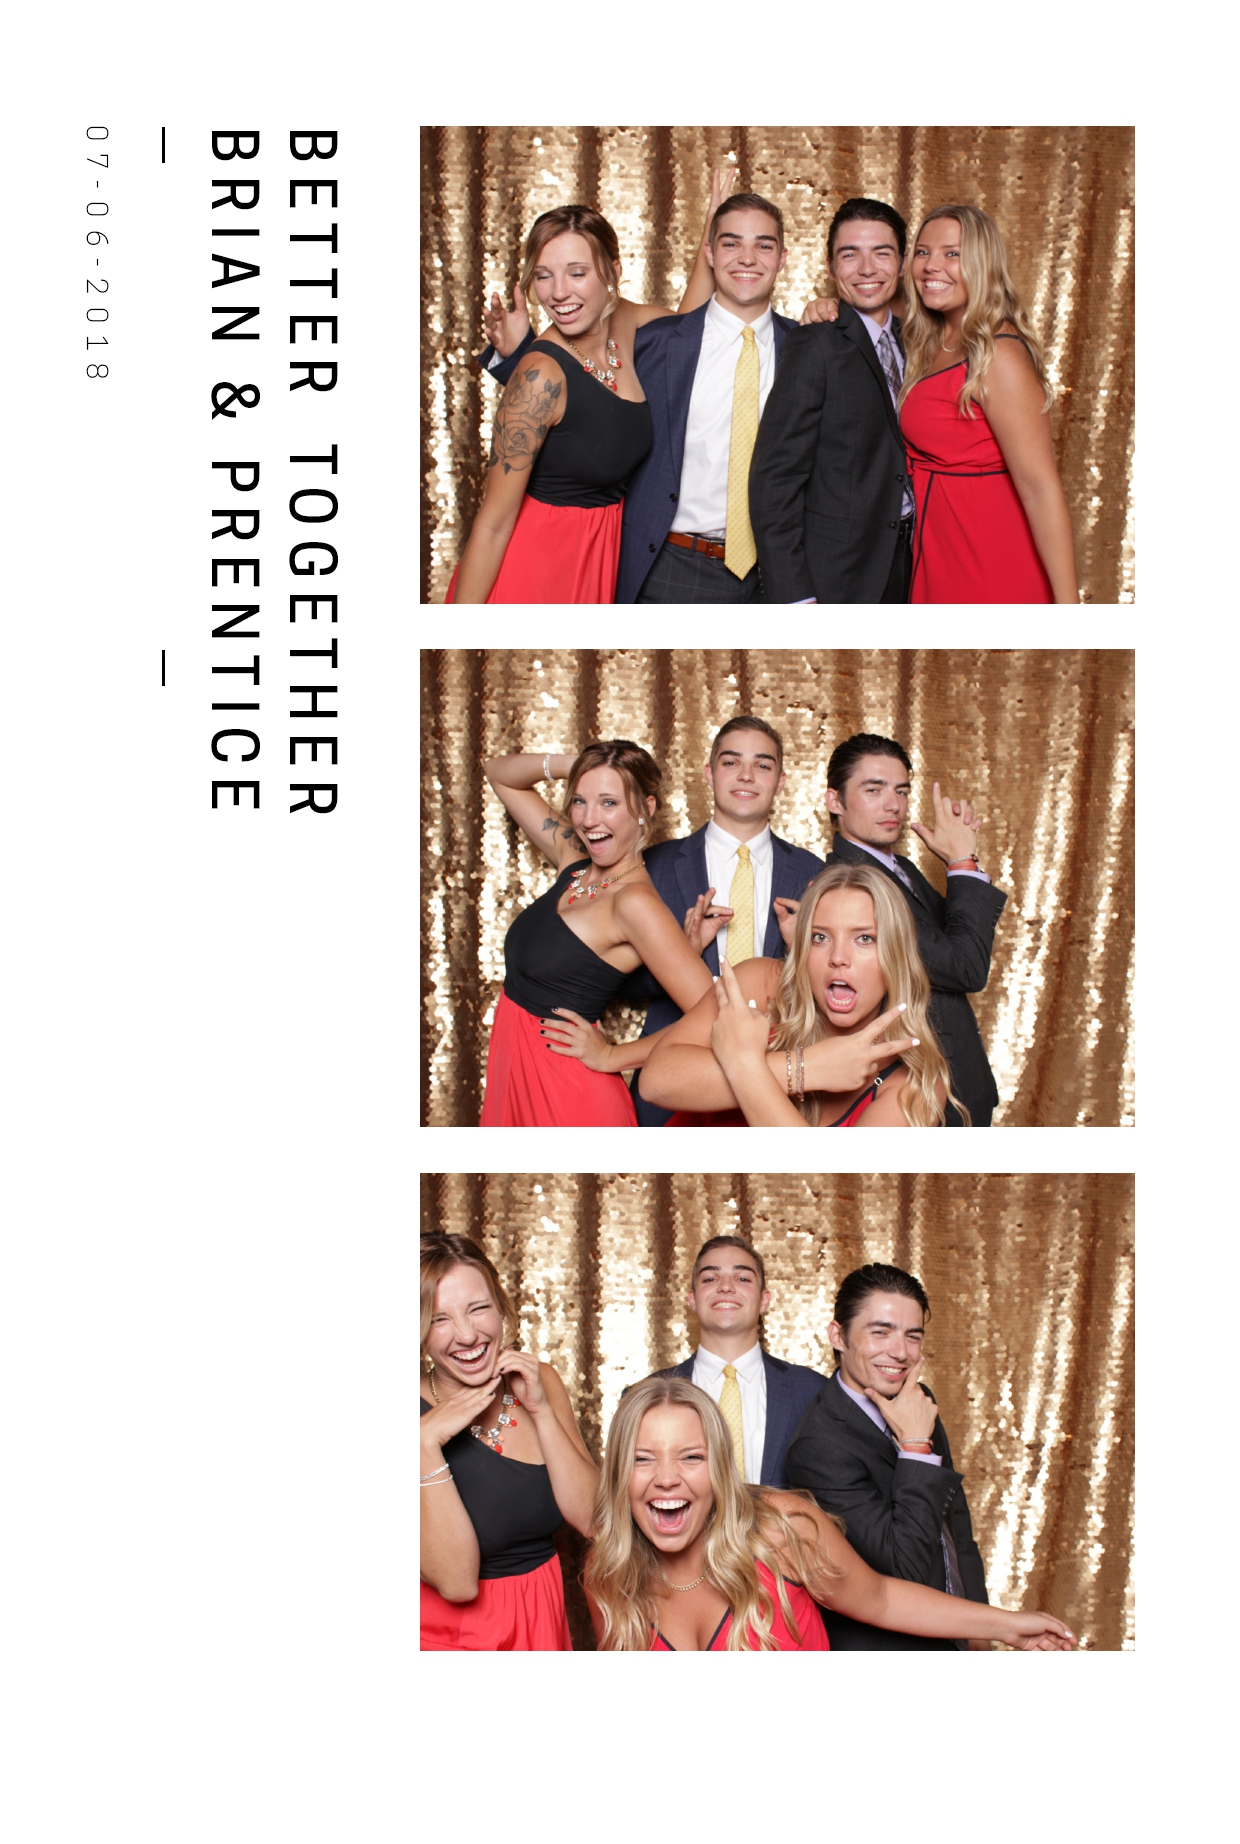 Minneapolis_St Paul_Photo_Booths_Weddings (19).jpg